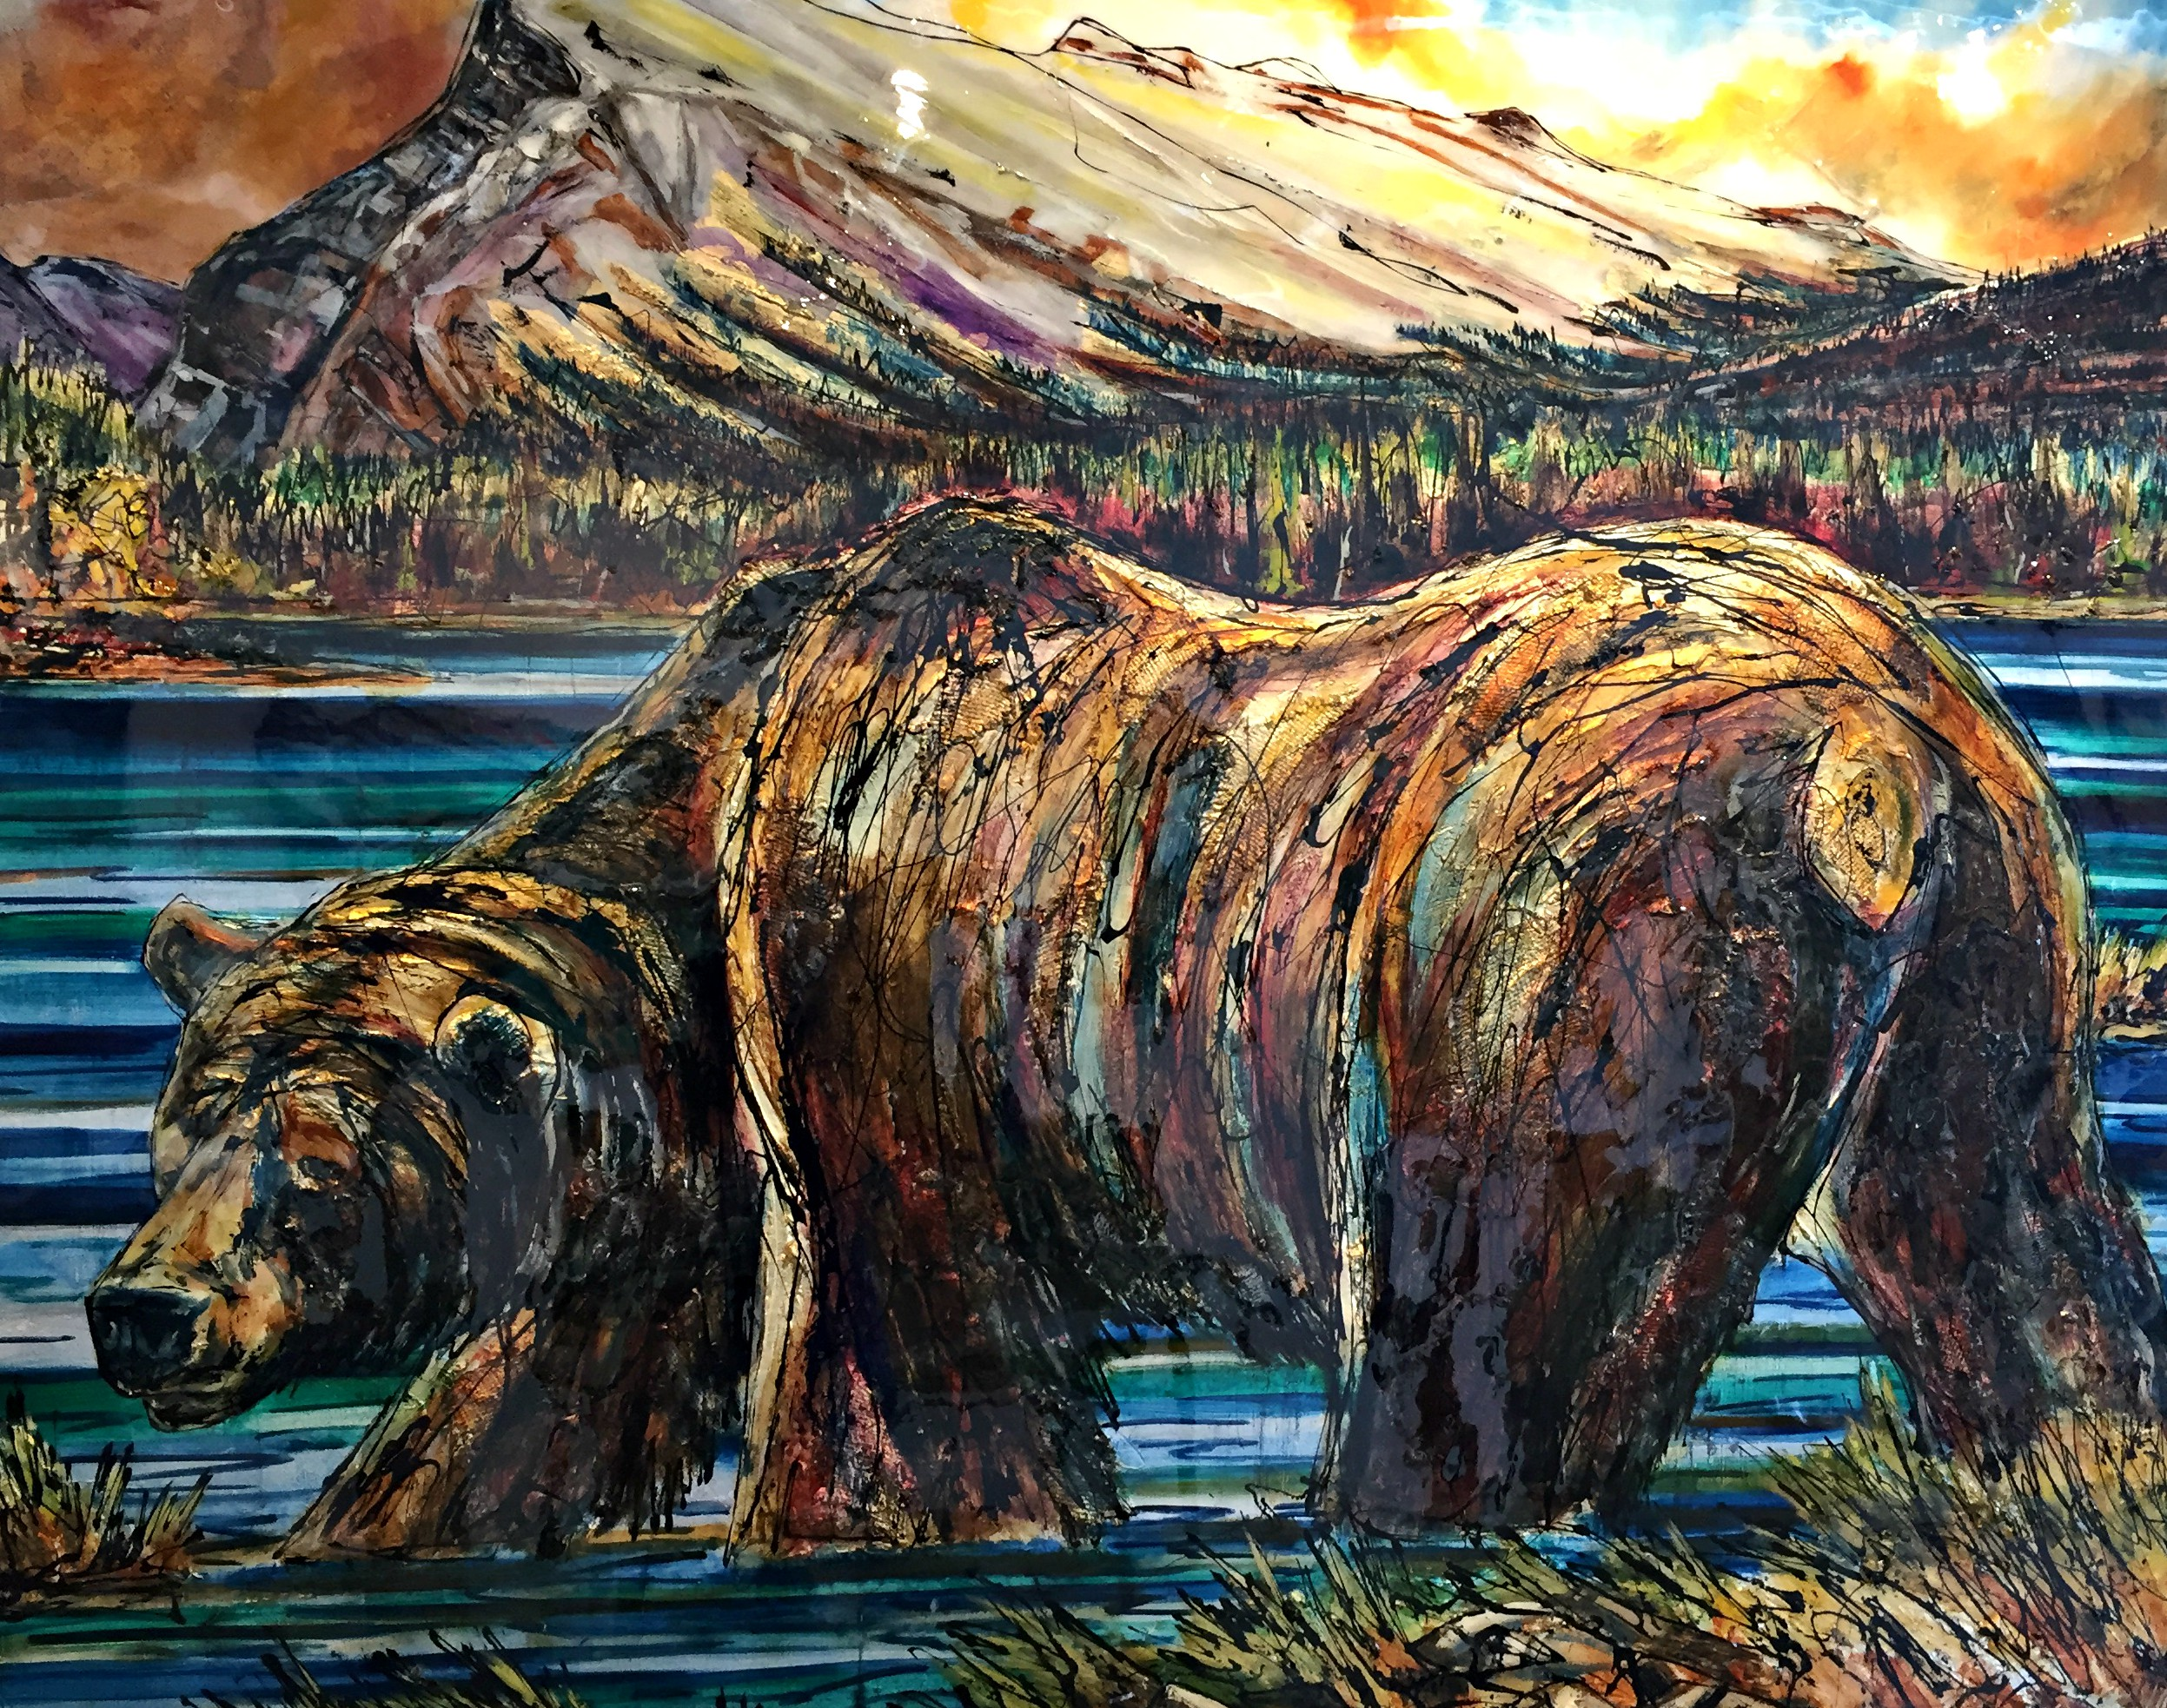 The Boss, mixed media bear painting by David Zimmerman | Effusion Art Gallery + Cast Glass Studio, Invermere BC